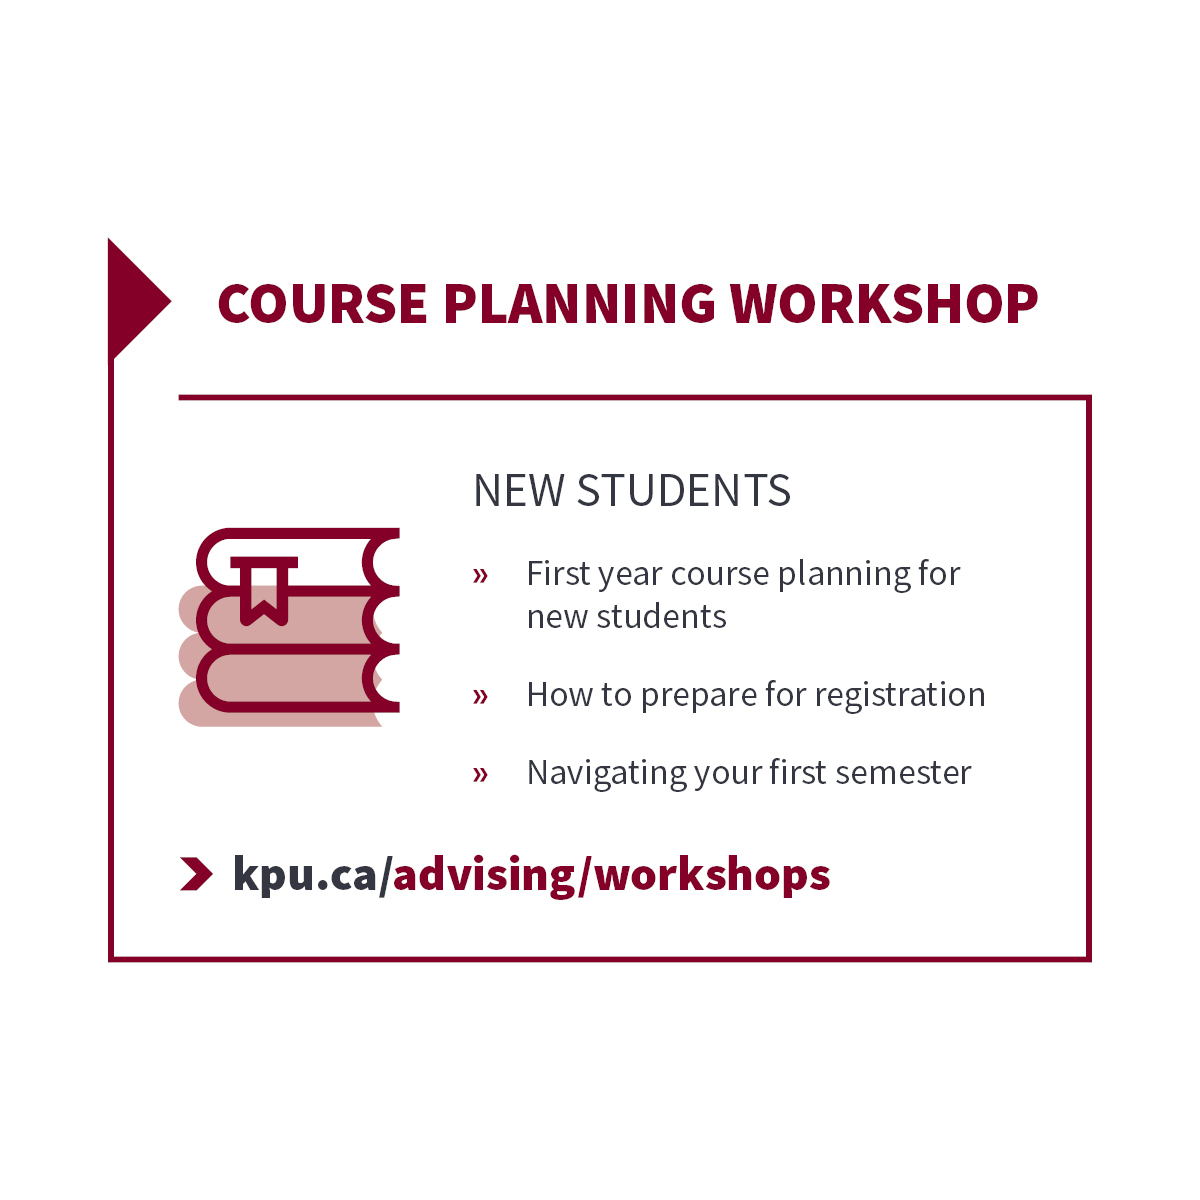 Course Planning - New Students